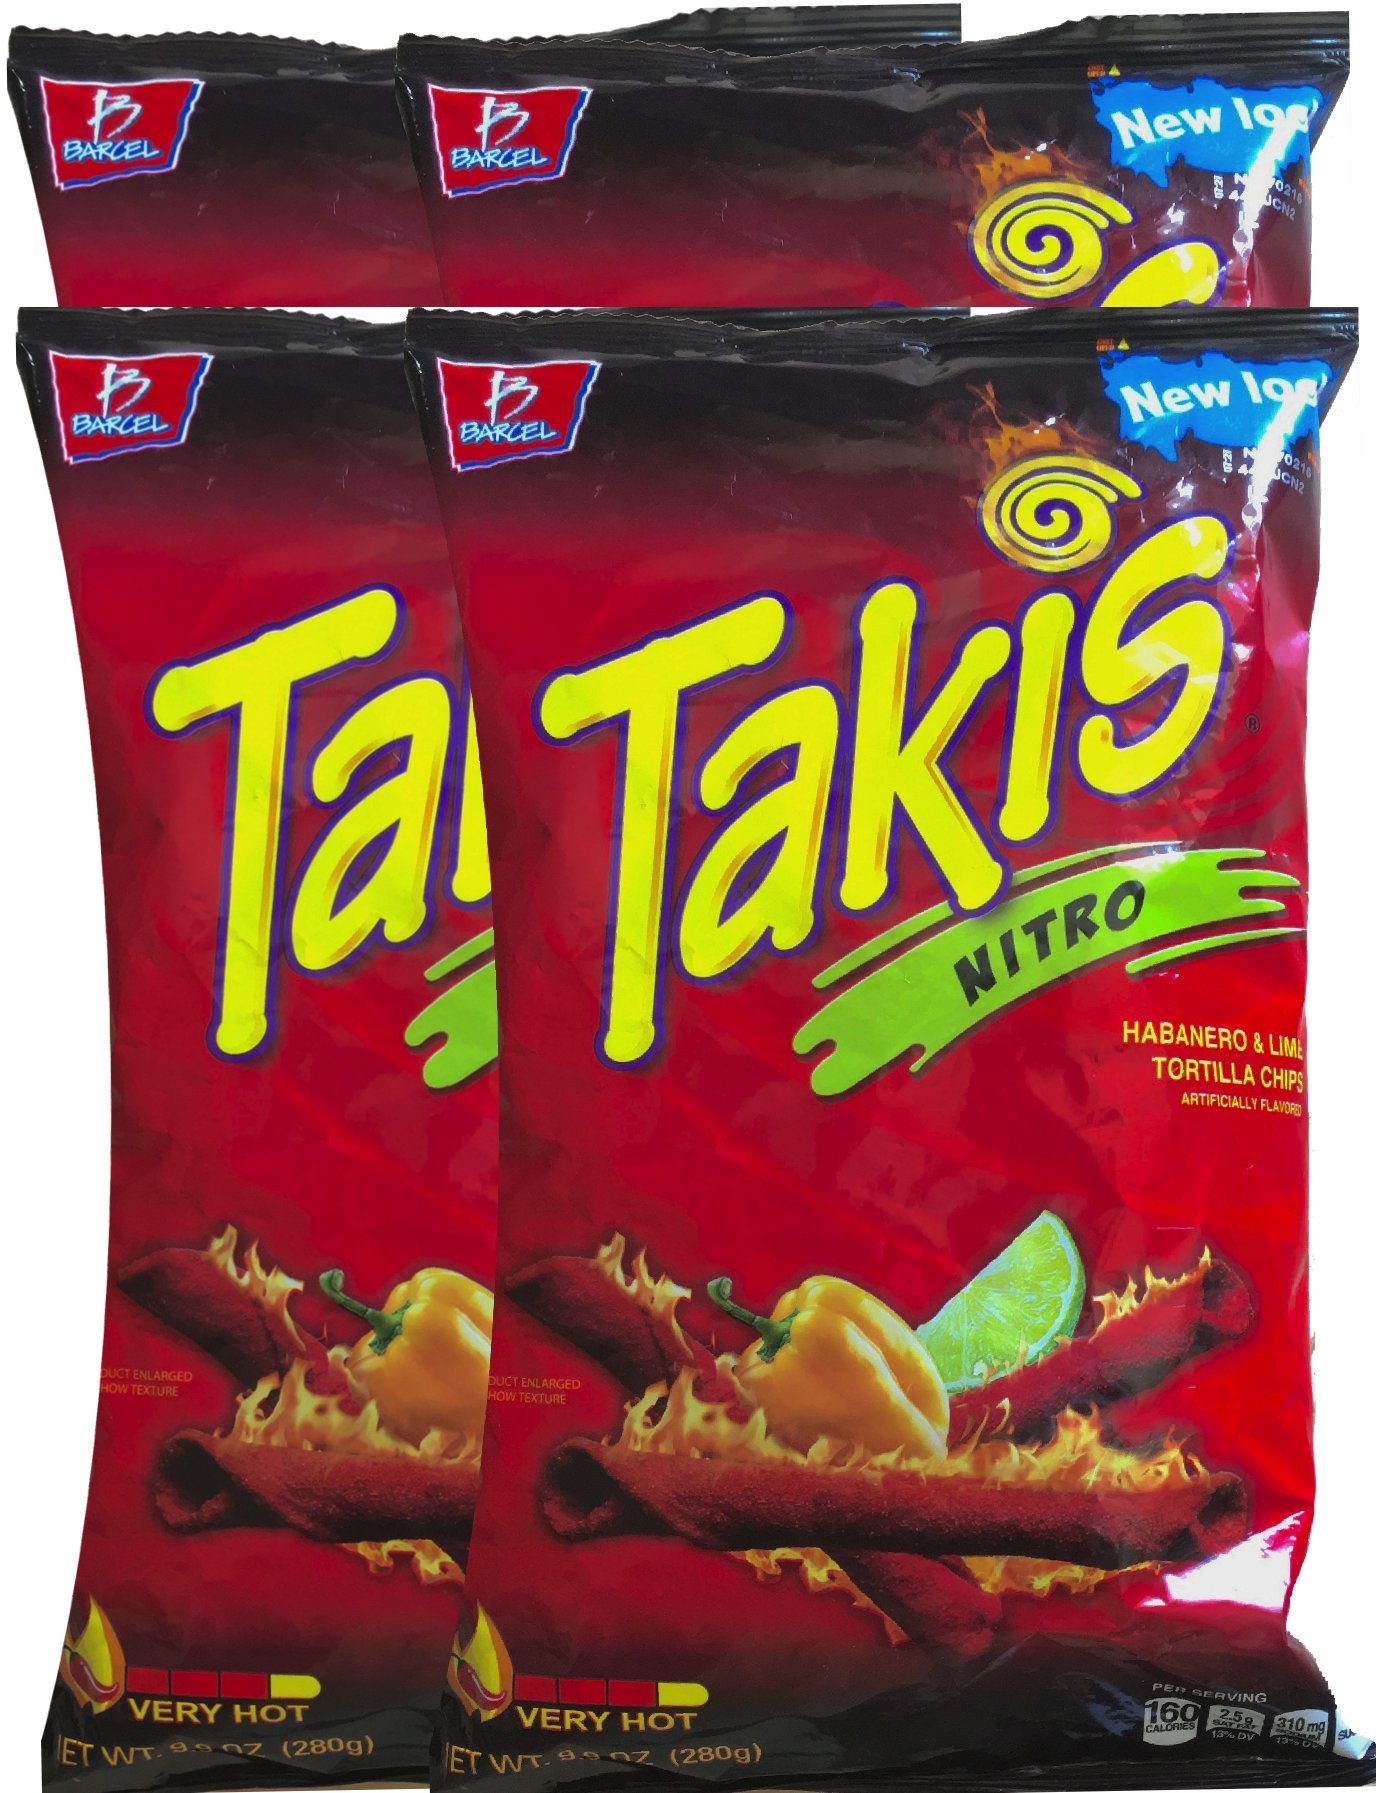 Barcel Takis Nitro Habanero & Lime Tortilla Chips Snack Care Package for College, Military, Sports 9.9 oz bag (4)